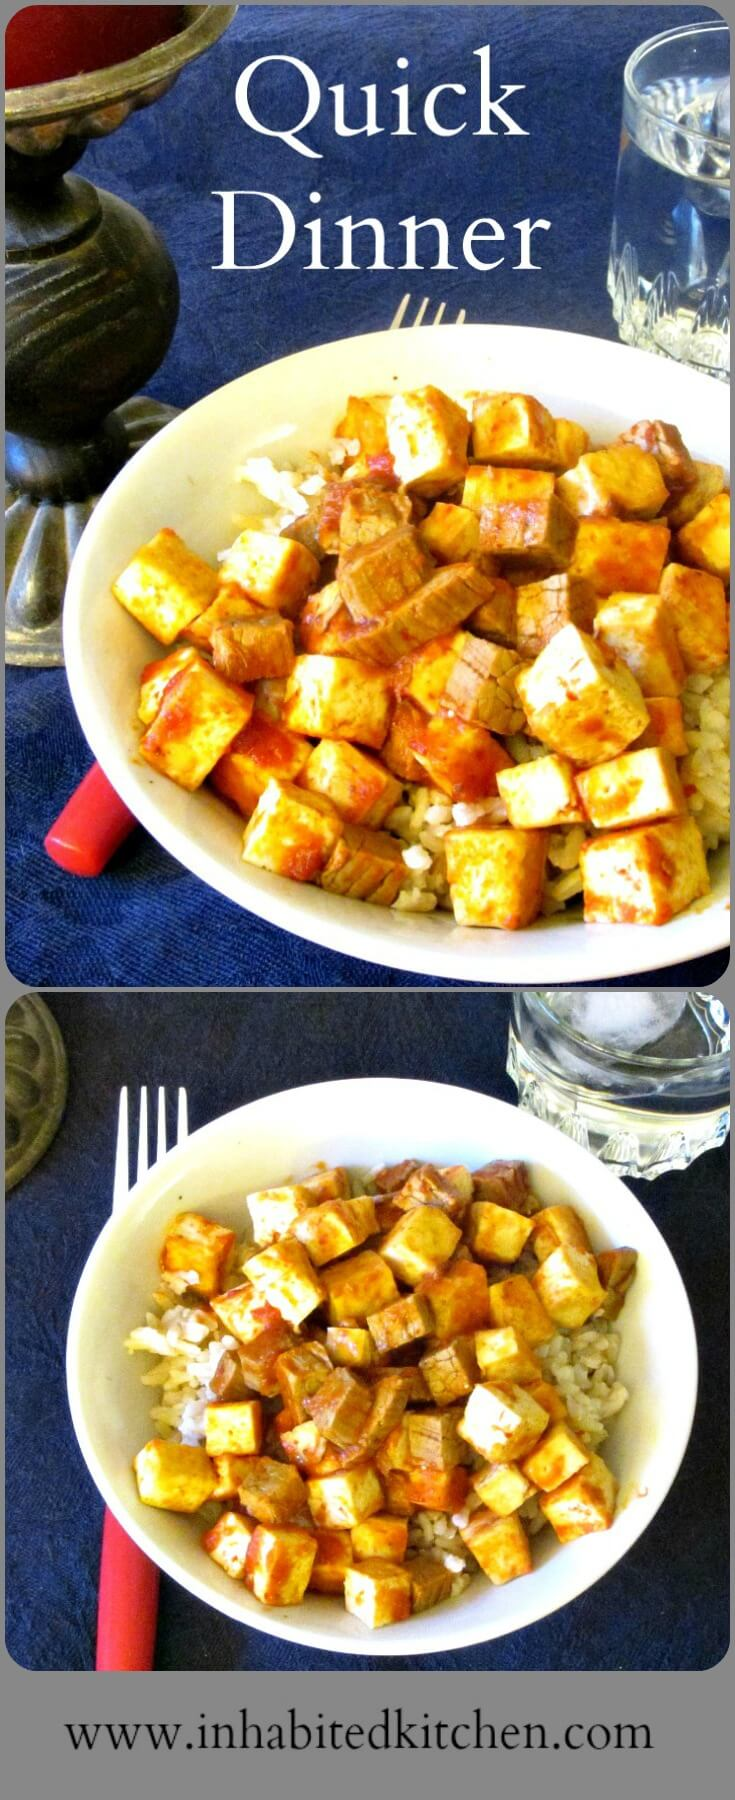 Combine leftover pot roast with tofu with seasoning to make a quick dinner that doesn't taste at all like leftovers!